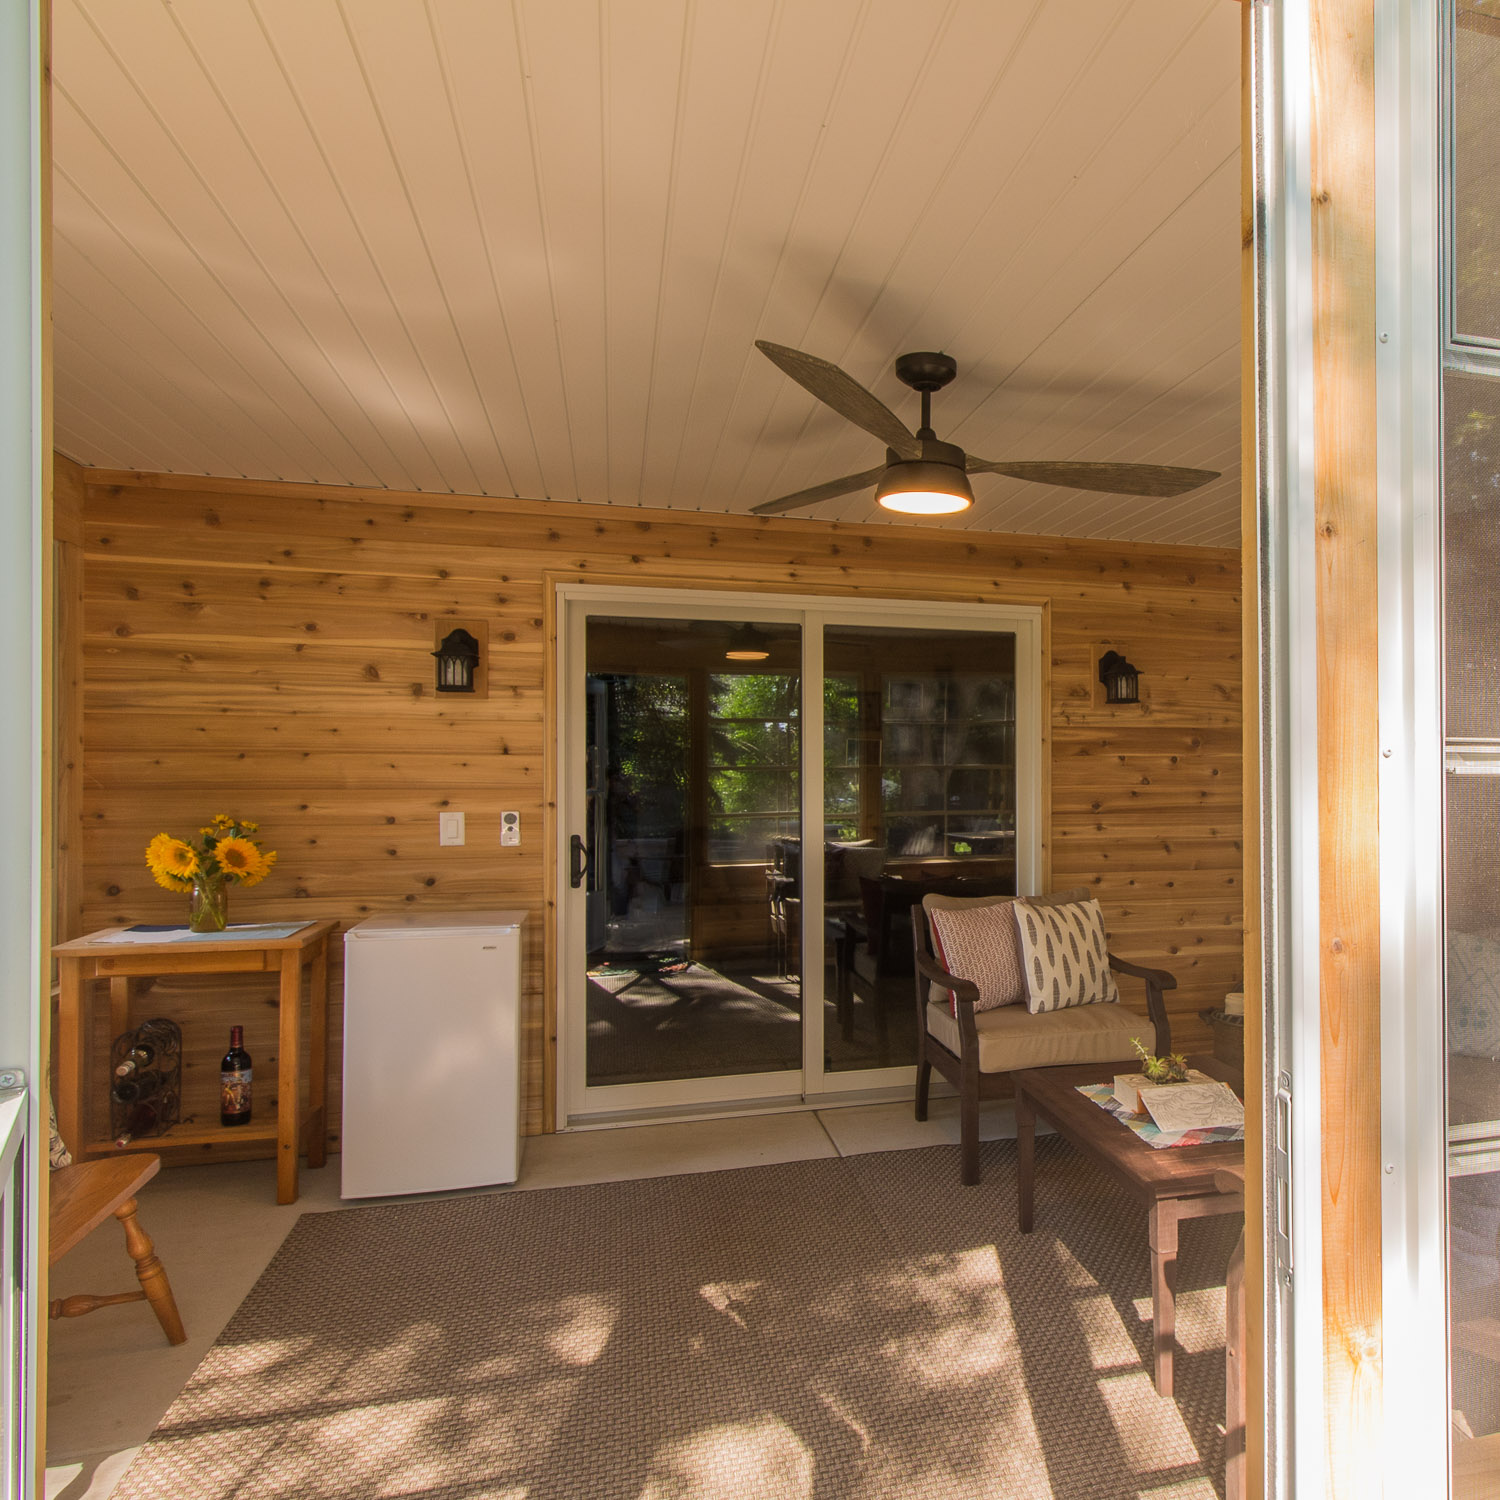 Home Remodeling Addition and 3 Season Porch